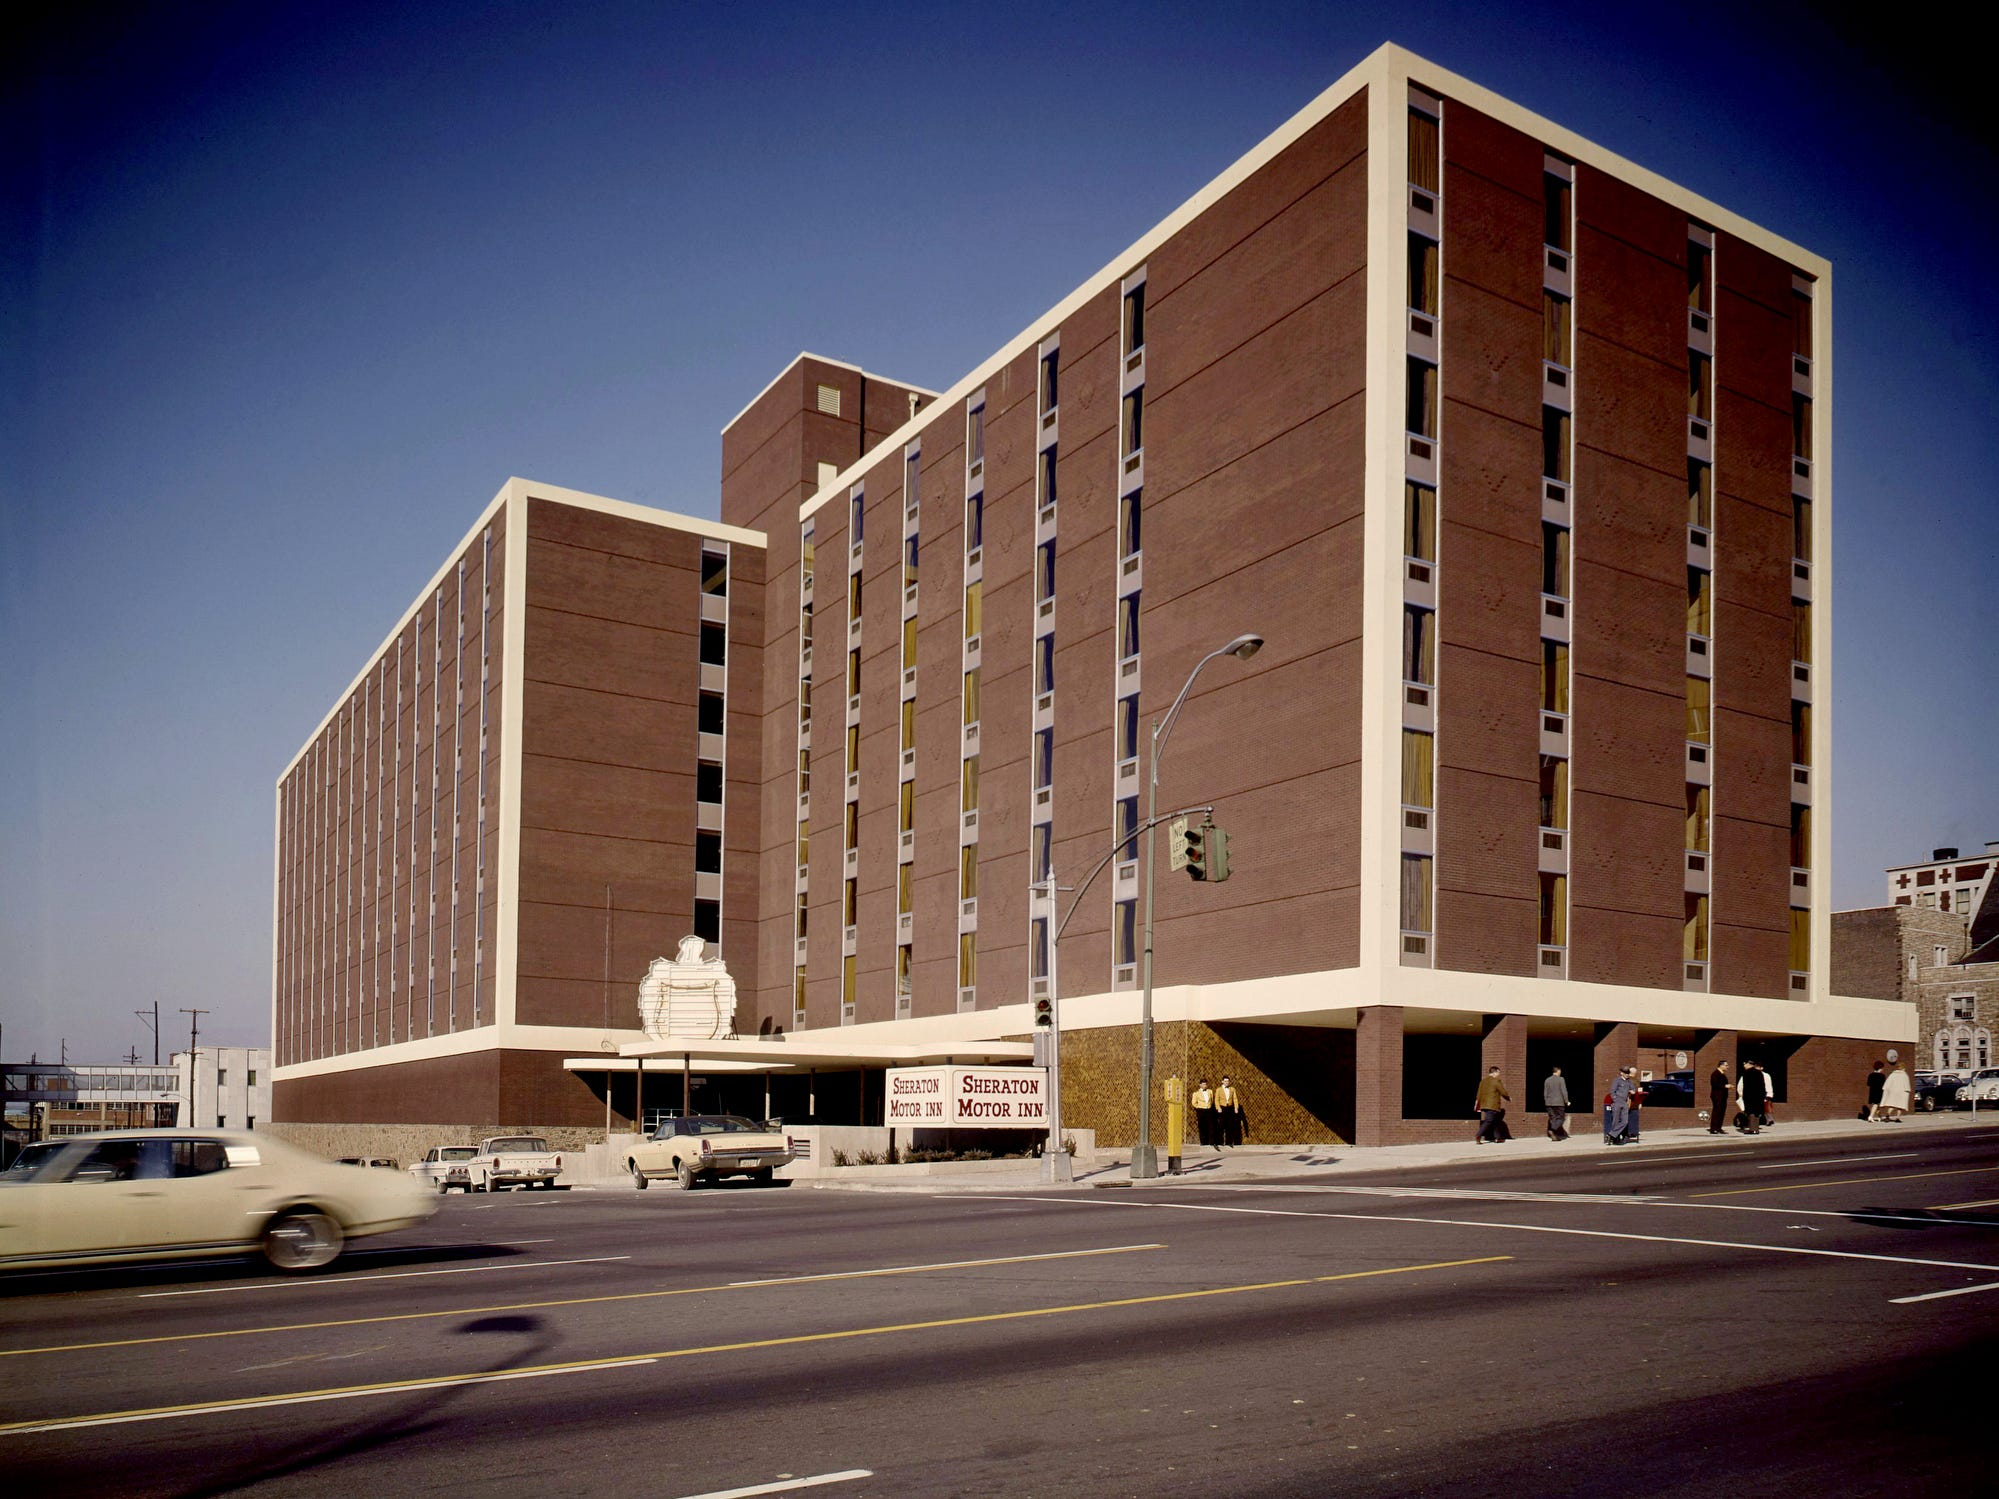 Still missing part of its sign, the new Sheraton Motor Inn at 10th and Broadway is now serving guests Dec. 11, 1968. Sheraton Nashville, with its 300 guest rooms, is the newest lure for travelers and convention-goers.